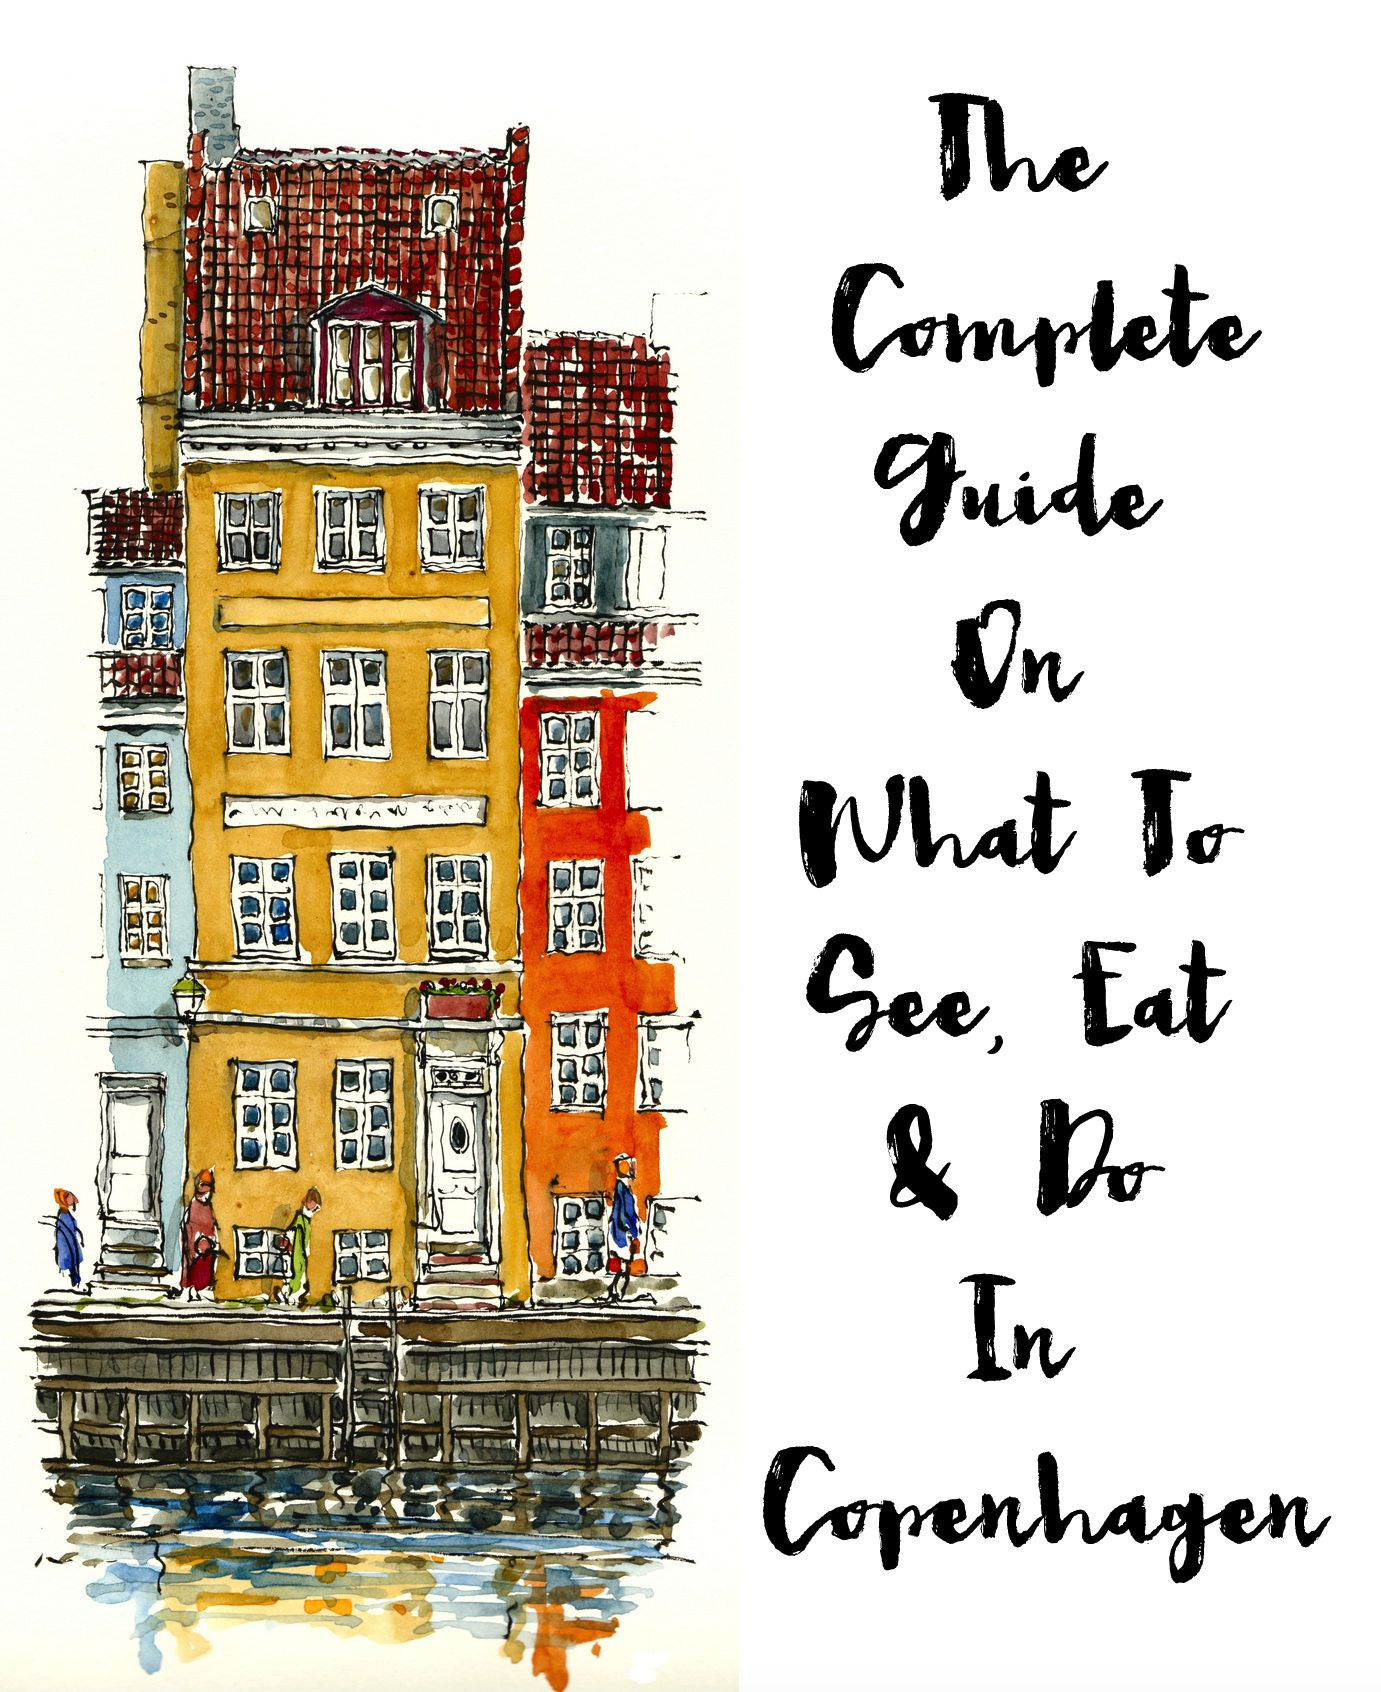 The Complete Guide On All The Things To See, Eat And Do In Copenhagen, Denmark